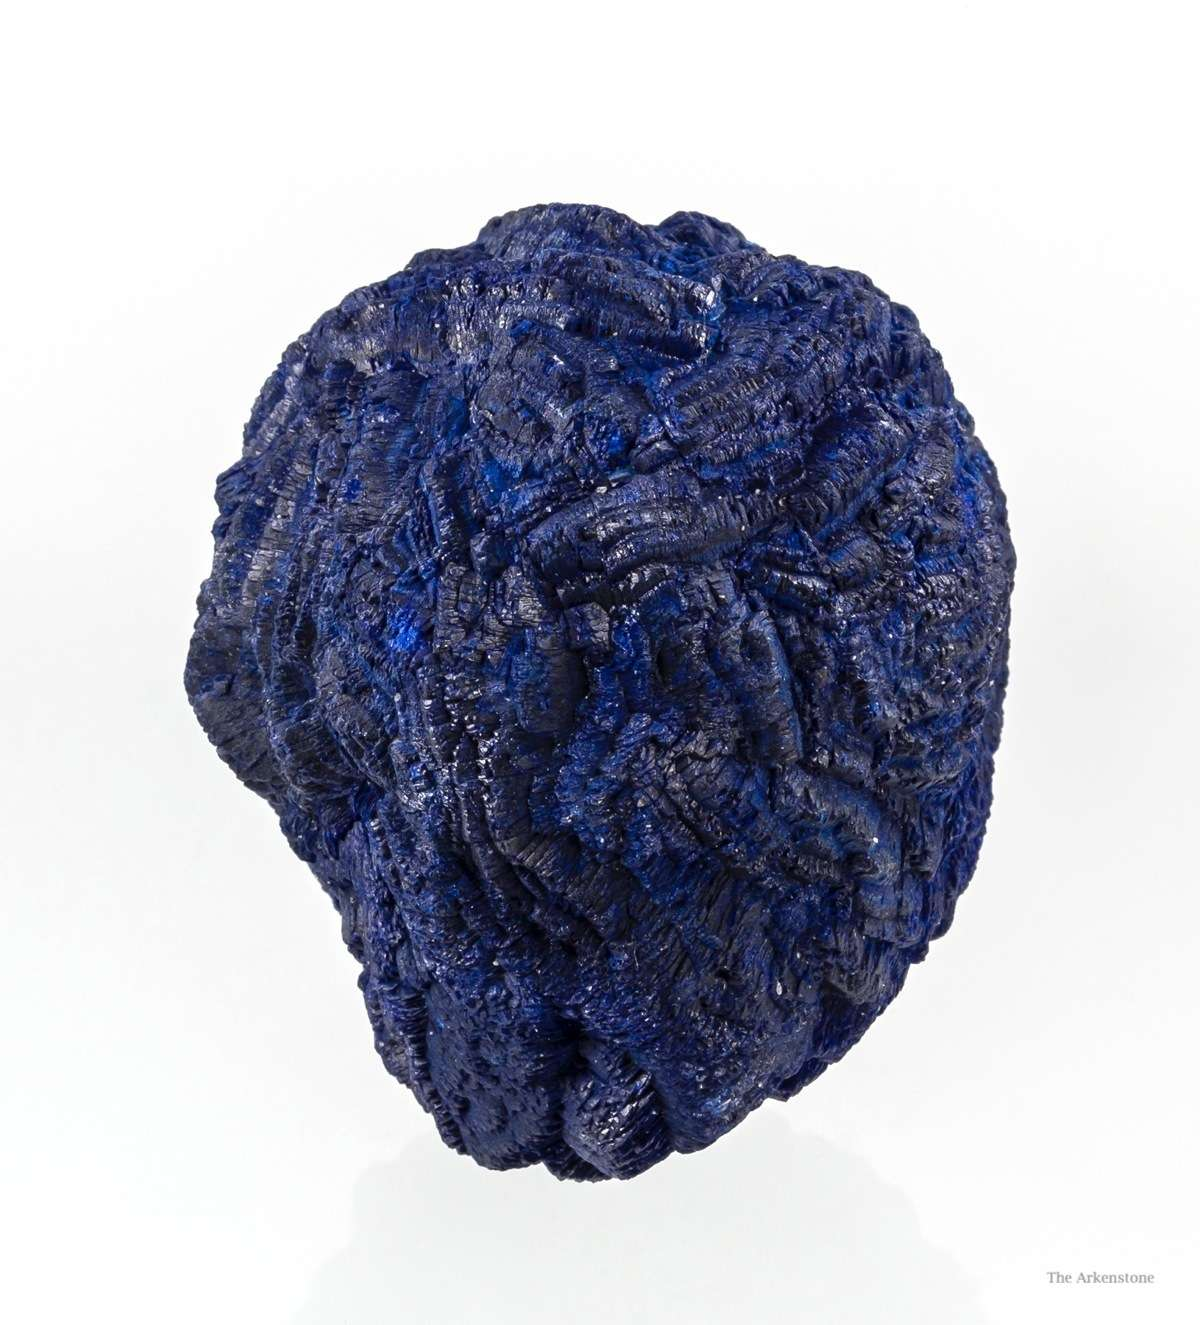 Divergent rich blue crystals formed nearly spherical ball azurite